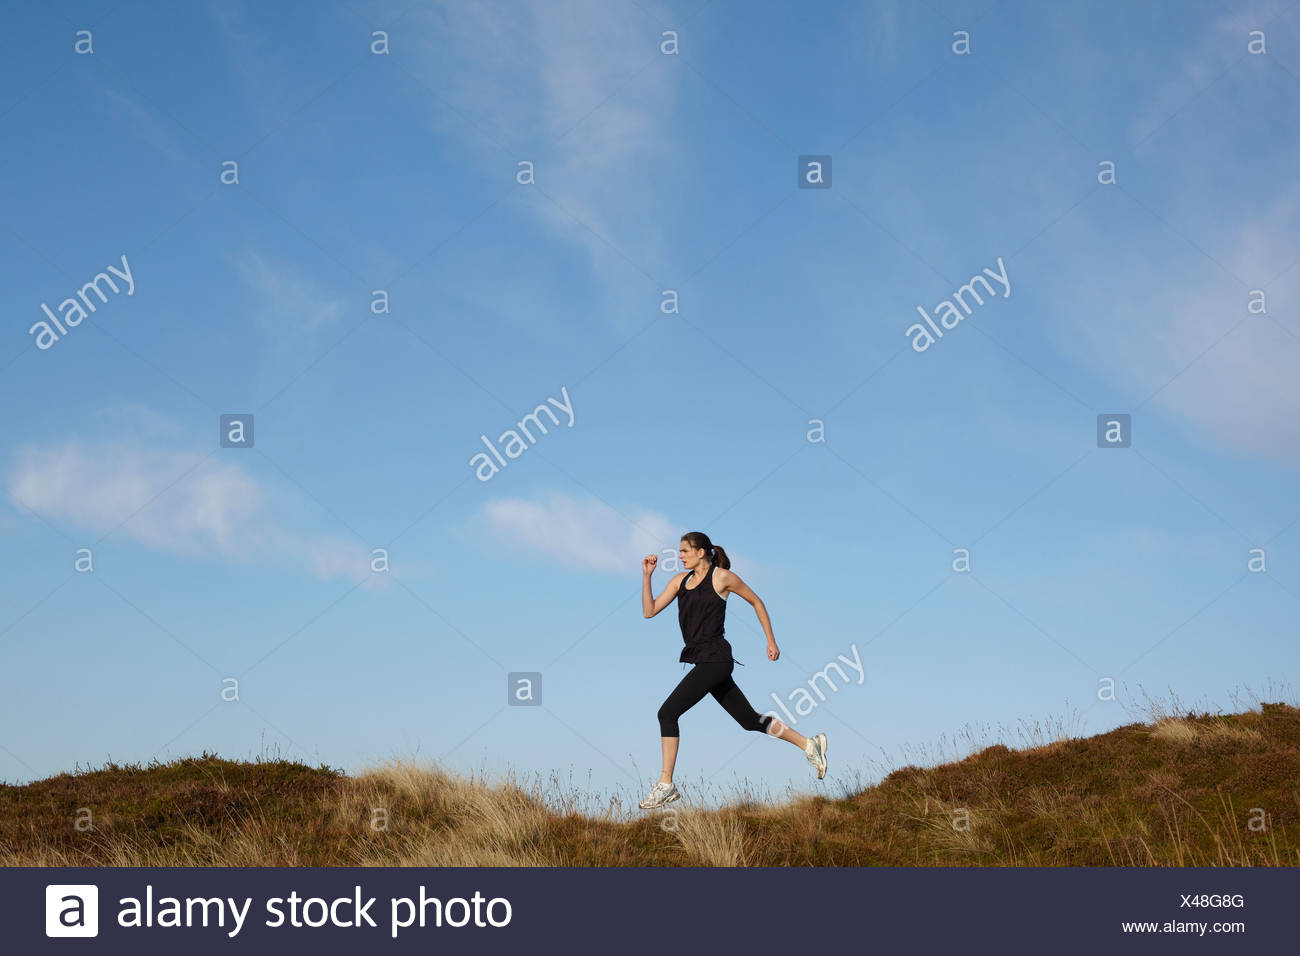 Woman running on rural hillside Stock Photo